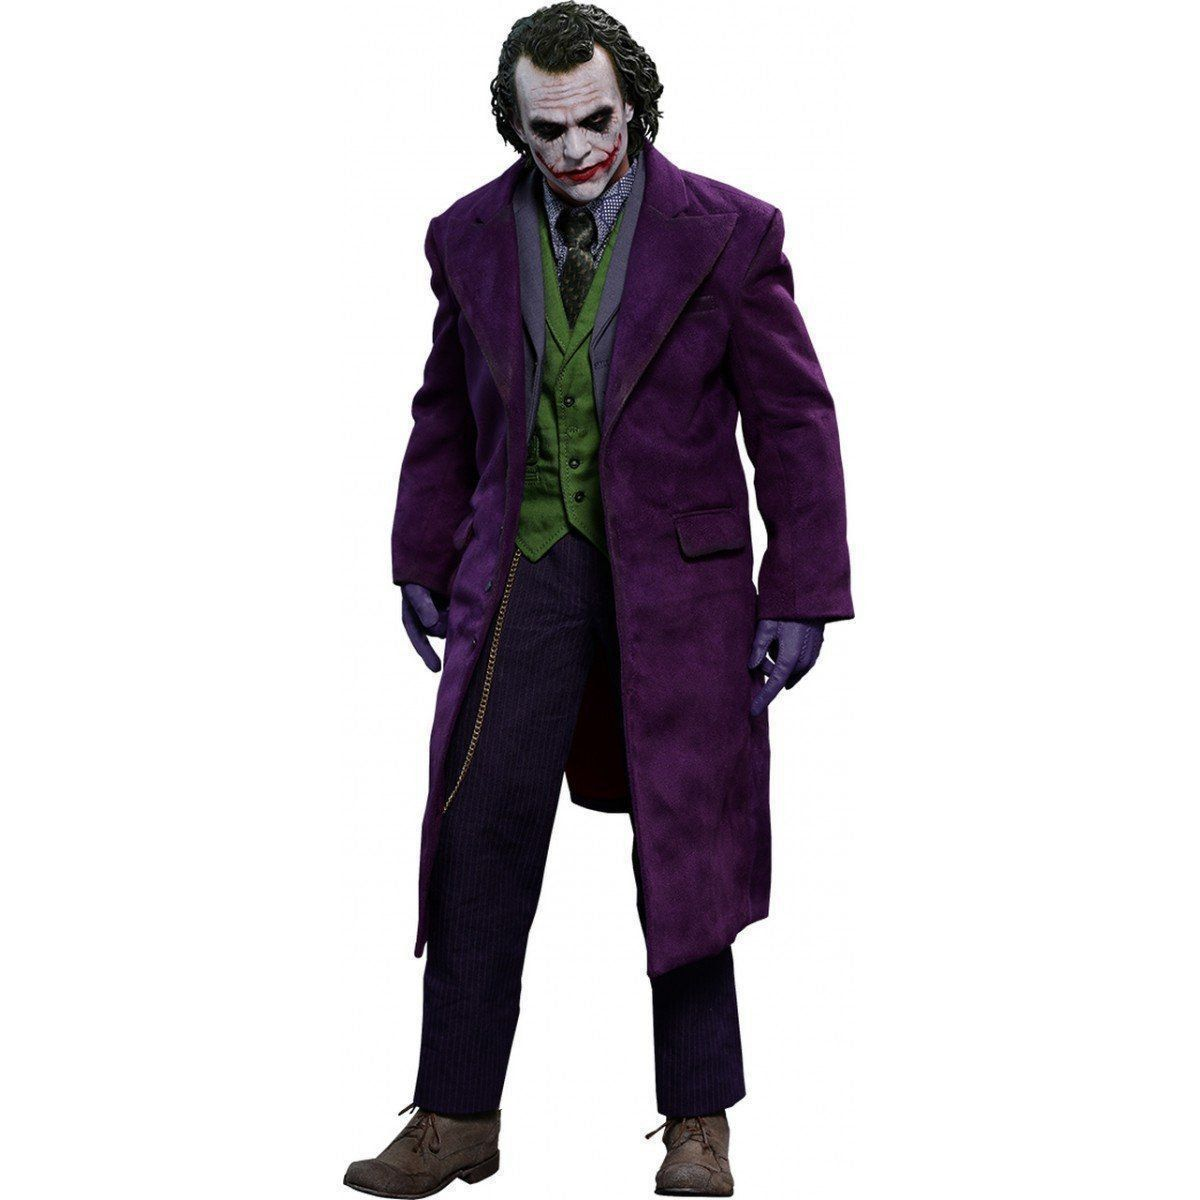 PRÉ VENDA: Boneco Coringa (The Joker): Batman: O Cavaleiro das Trevas (The Dark Knight) Escala 1/4 - Hot Toys